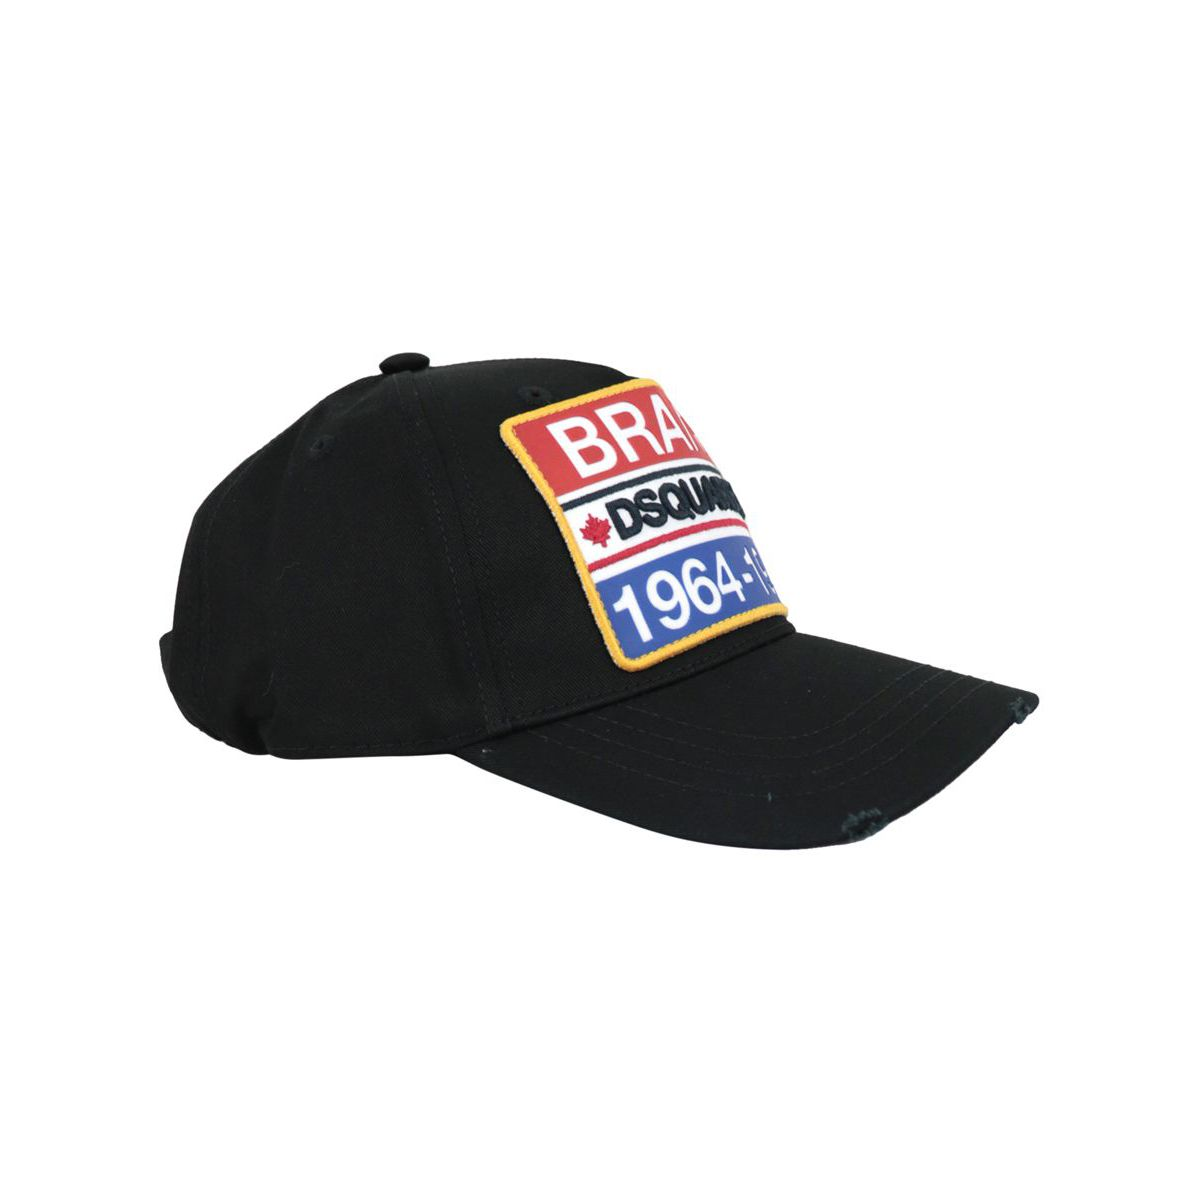 Cotton baseball hat with logo patch Black Dsquared2